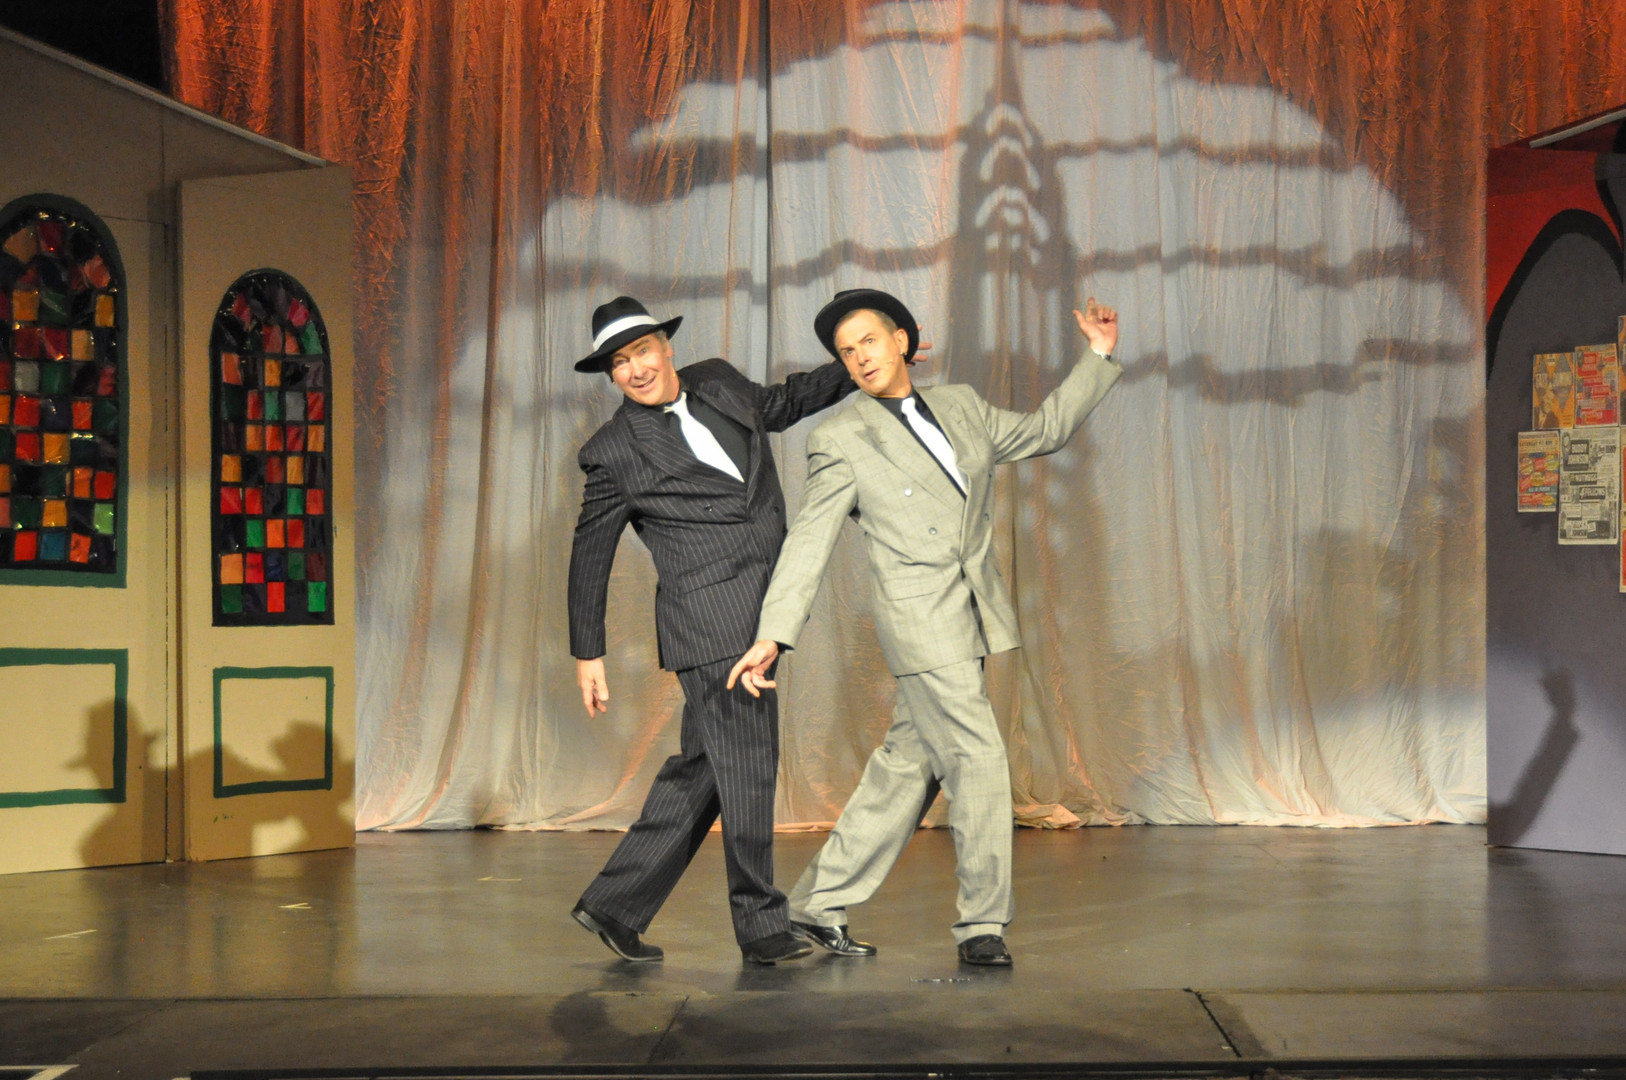 Guys & Dolls - Display 65 (19 of 65).jpg